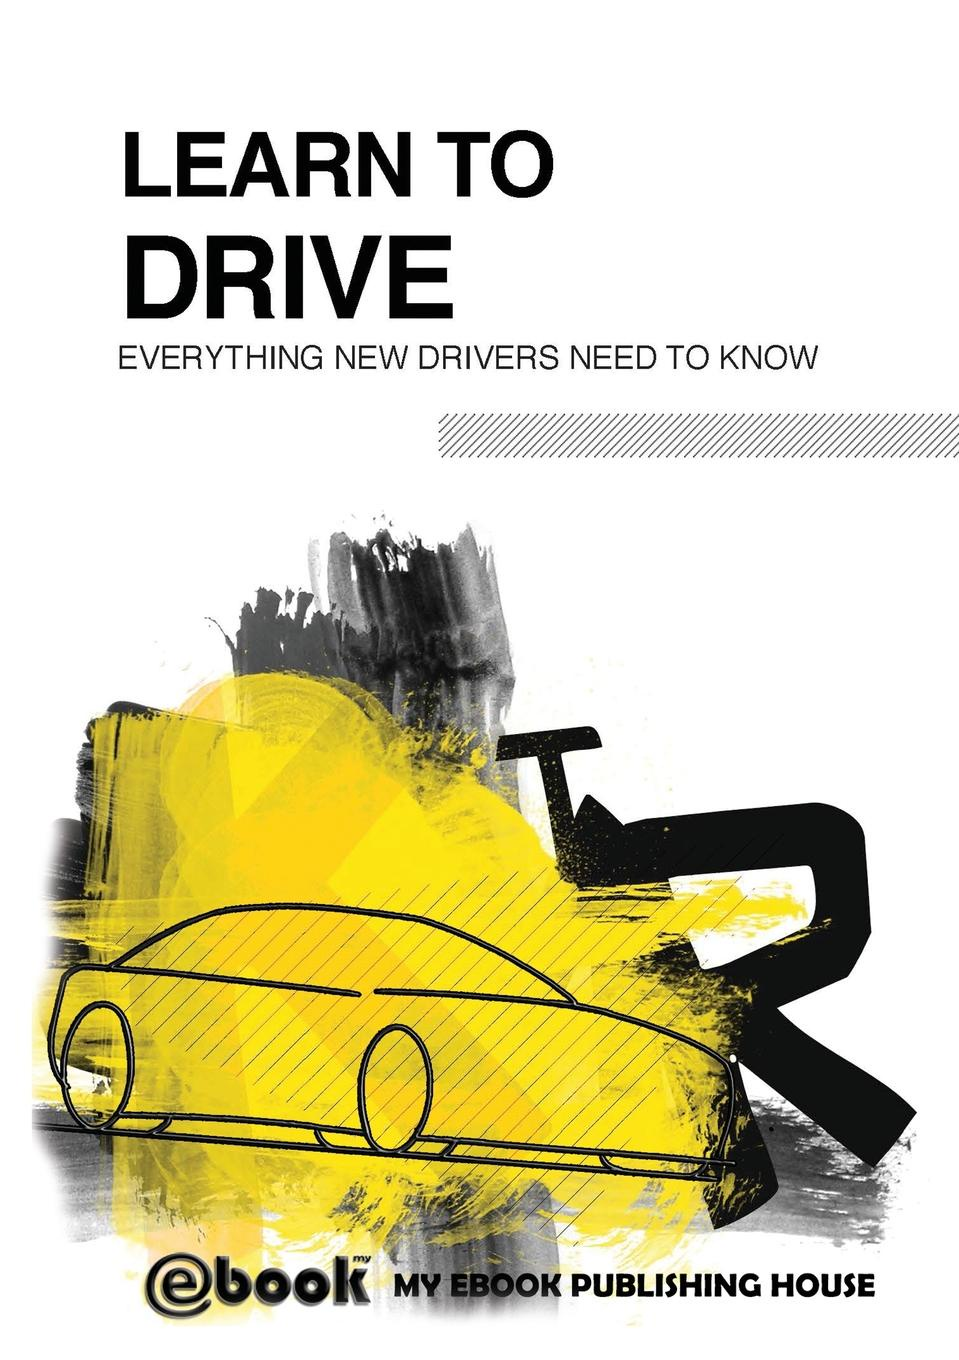 My Ebook Publishing House Learn to Drive - Everything New Drivers Need to Know